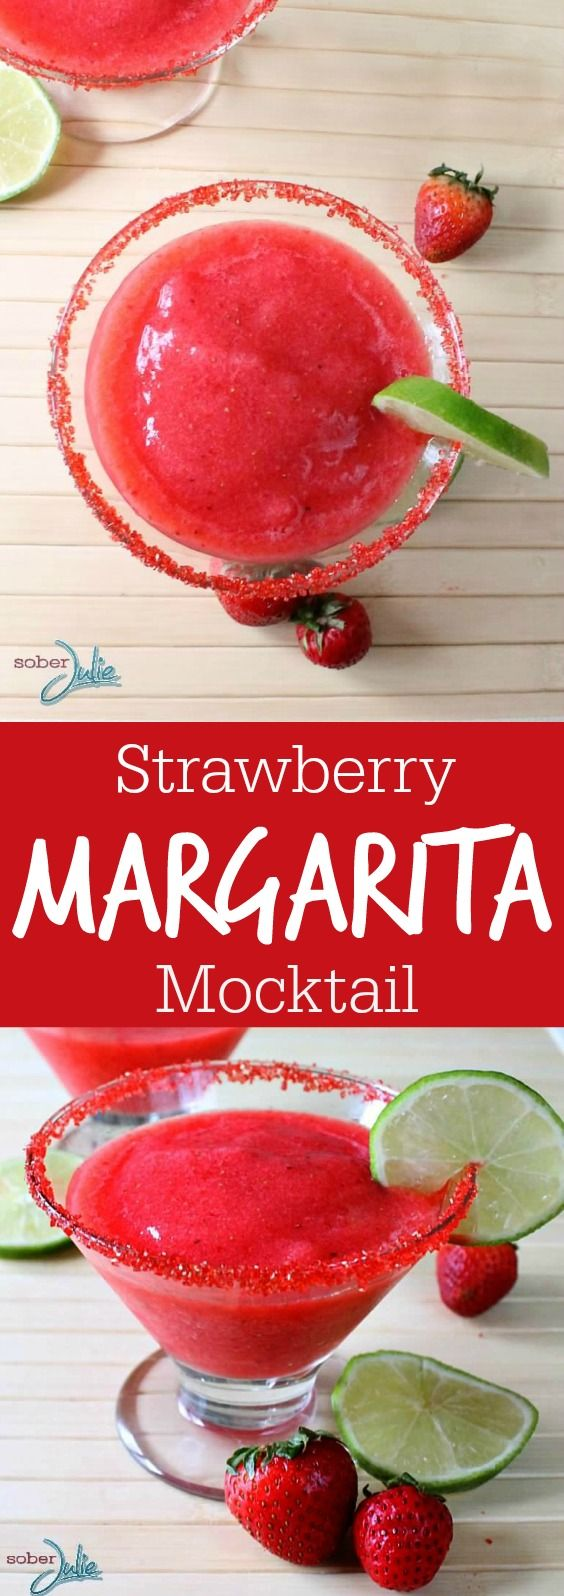 Strawberry Margarita Mocktails non alcoholic drink recipe via Sober Julie - The BEST Easy Non-Alcoholic Drinks Recipes - Creative Mocktails and Family Friendly, Alcohol-Free, Big Batch Party Beverages for a Crowd!